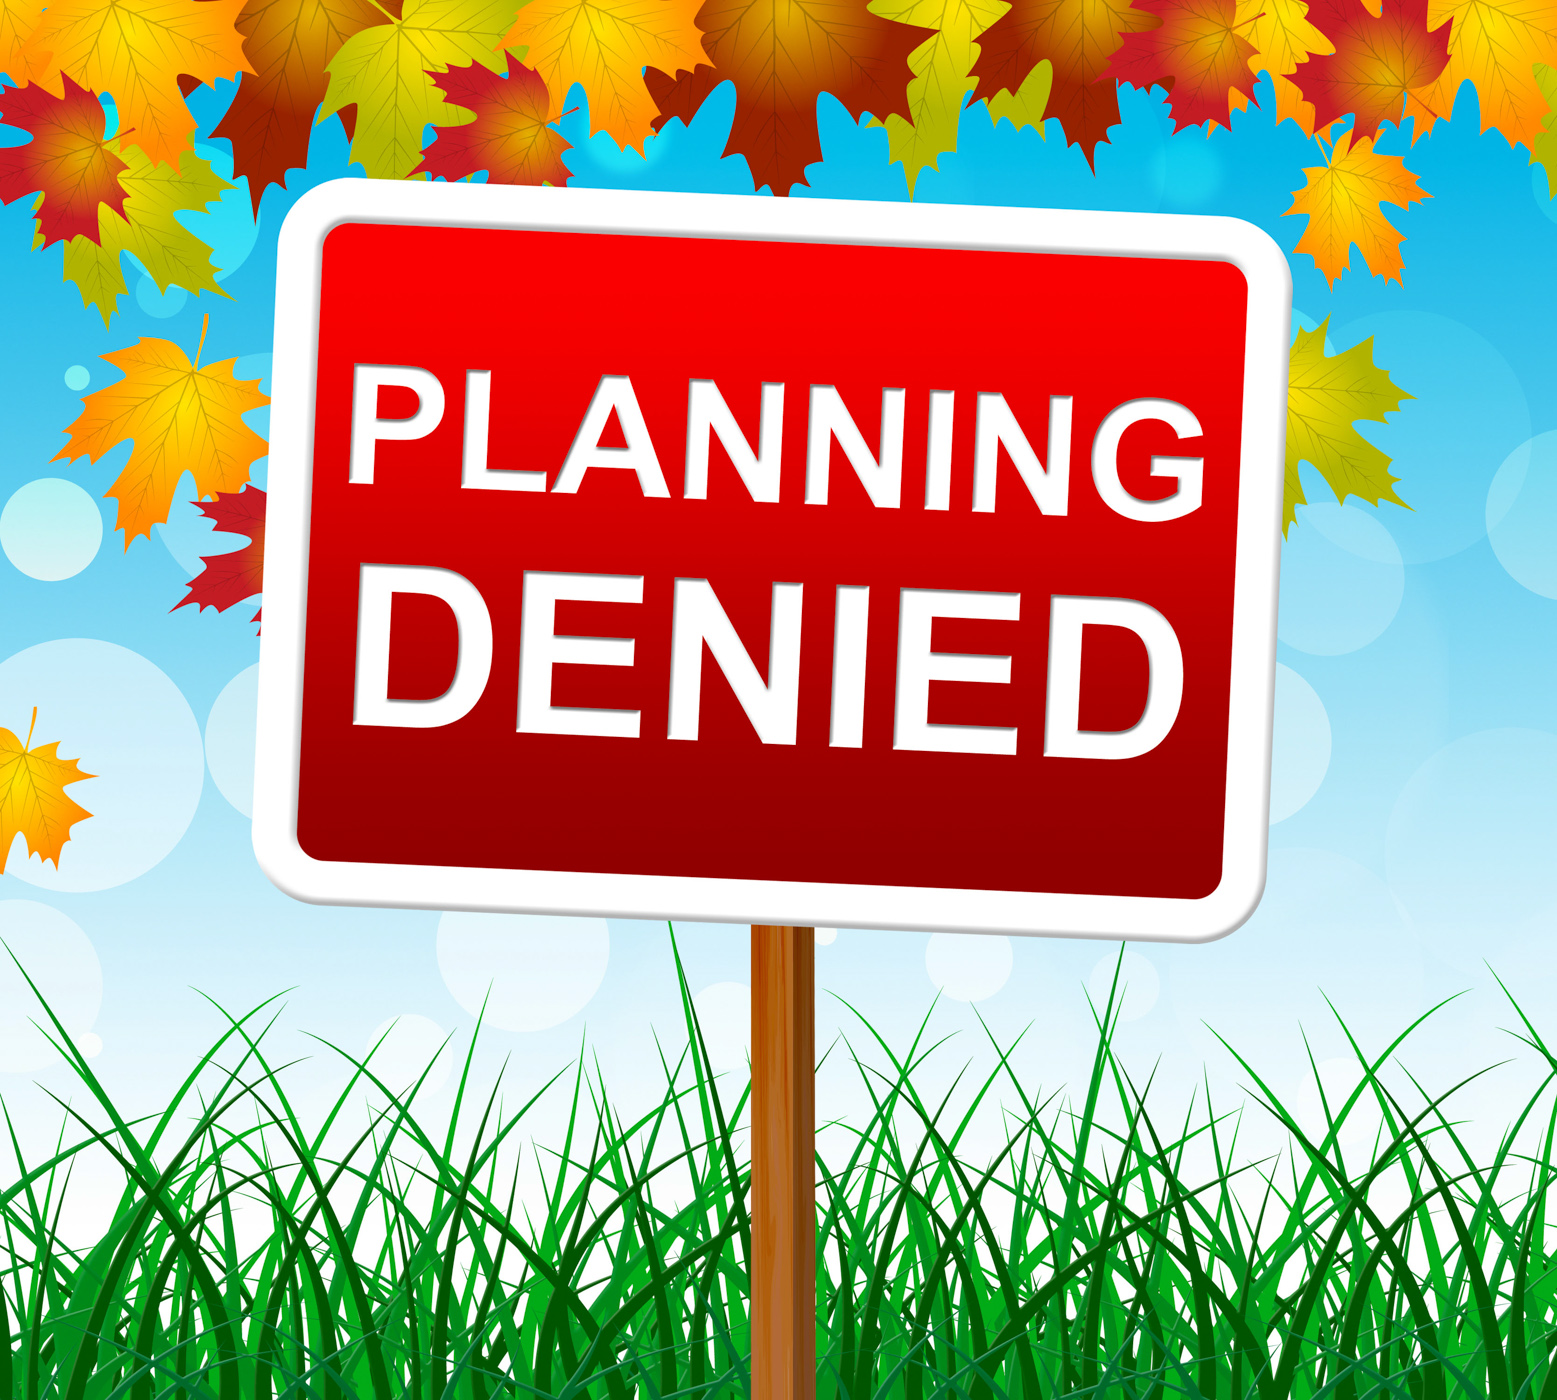 Planning Denied Means Missions Aim And Objective, Aim, Objectives, Rejection, Rejected, HQ Photo